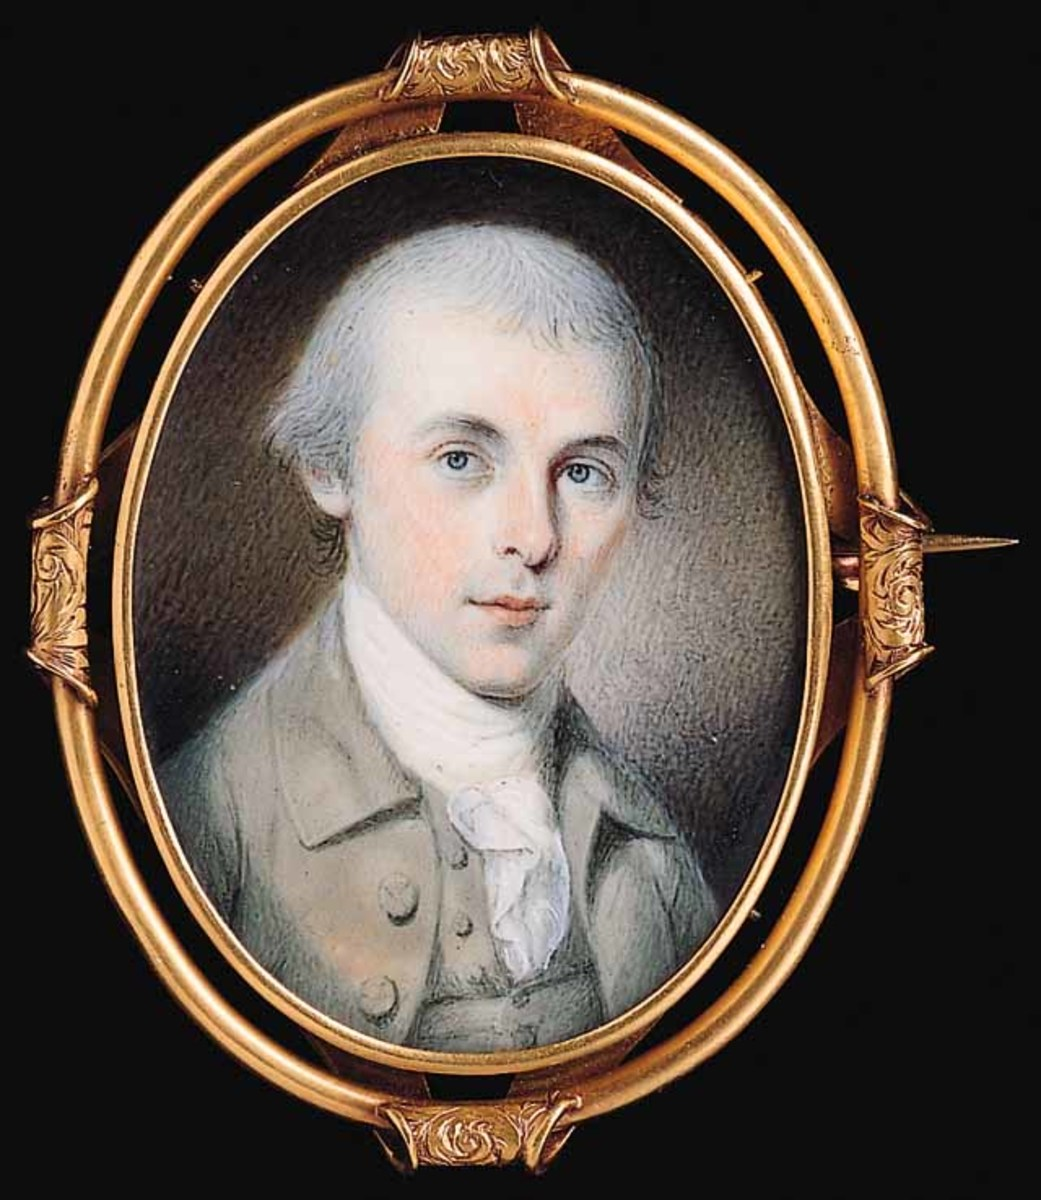 A YOUNG JAMES MADISON